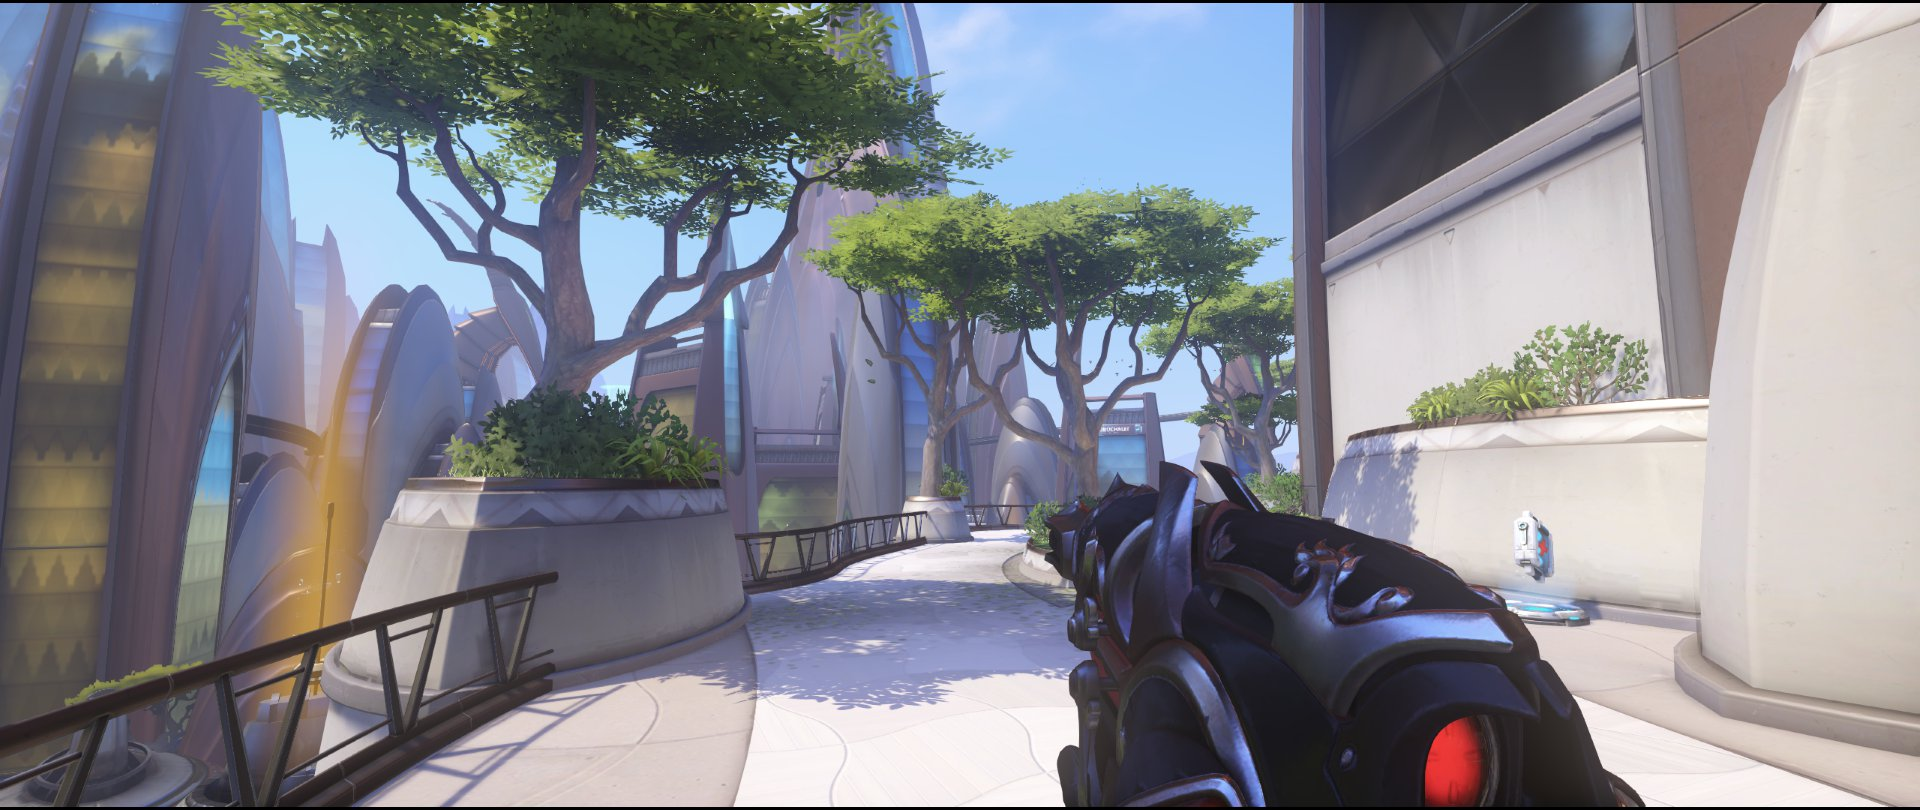 Several trees spawn kill defense Widowmaker sniping spot Numbany Overwatch.jpg